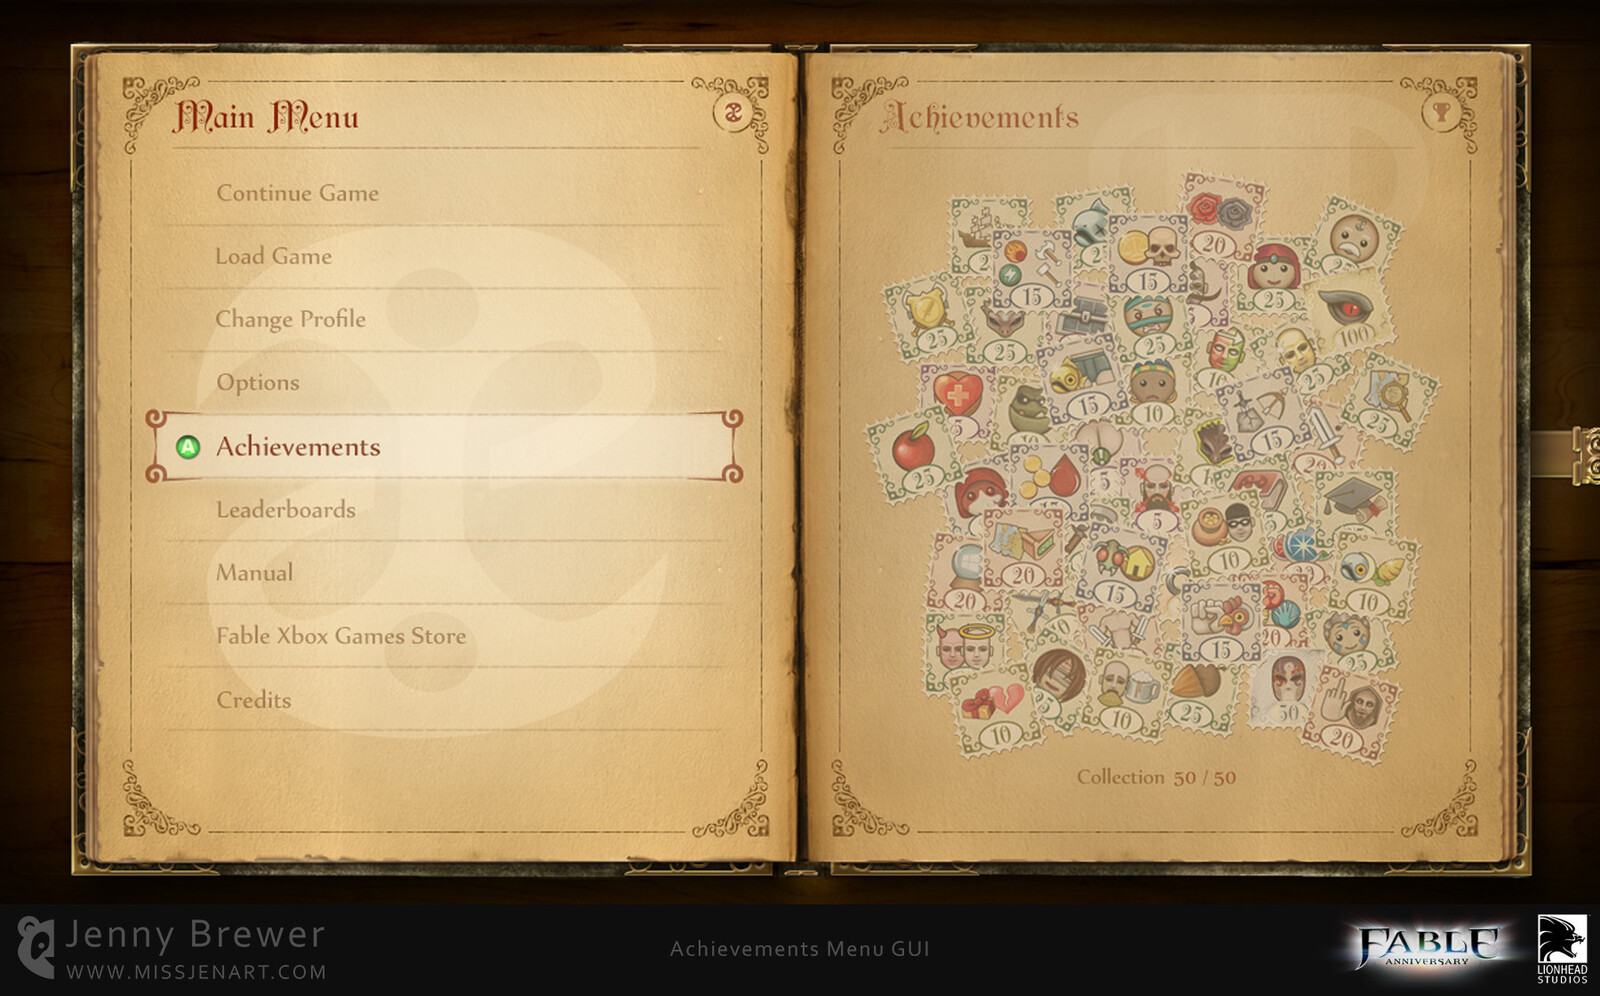 The achievements are presented as a stamp collection album within the book themed game menus.